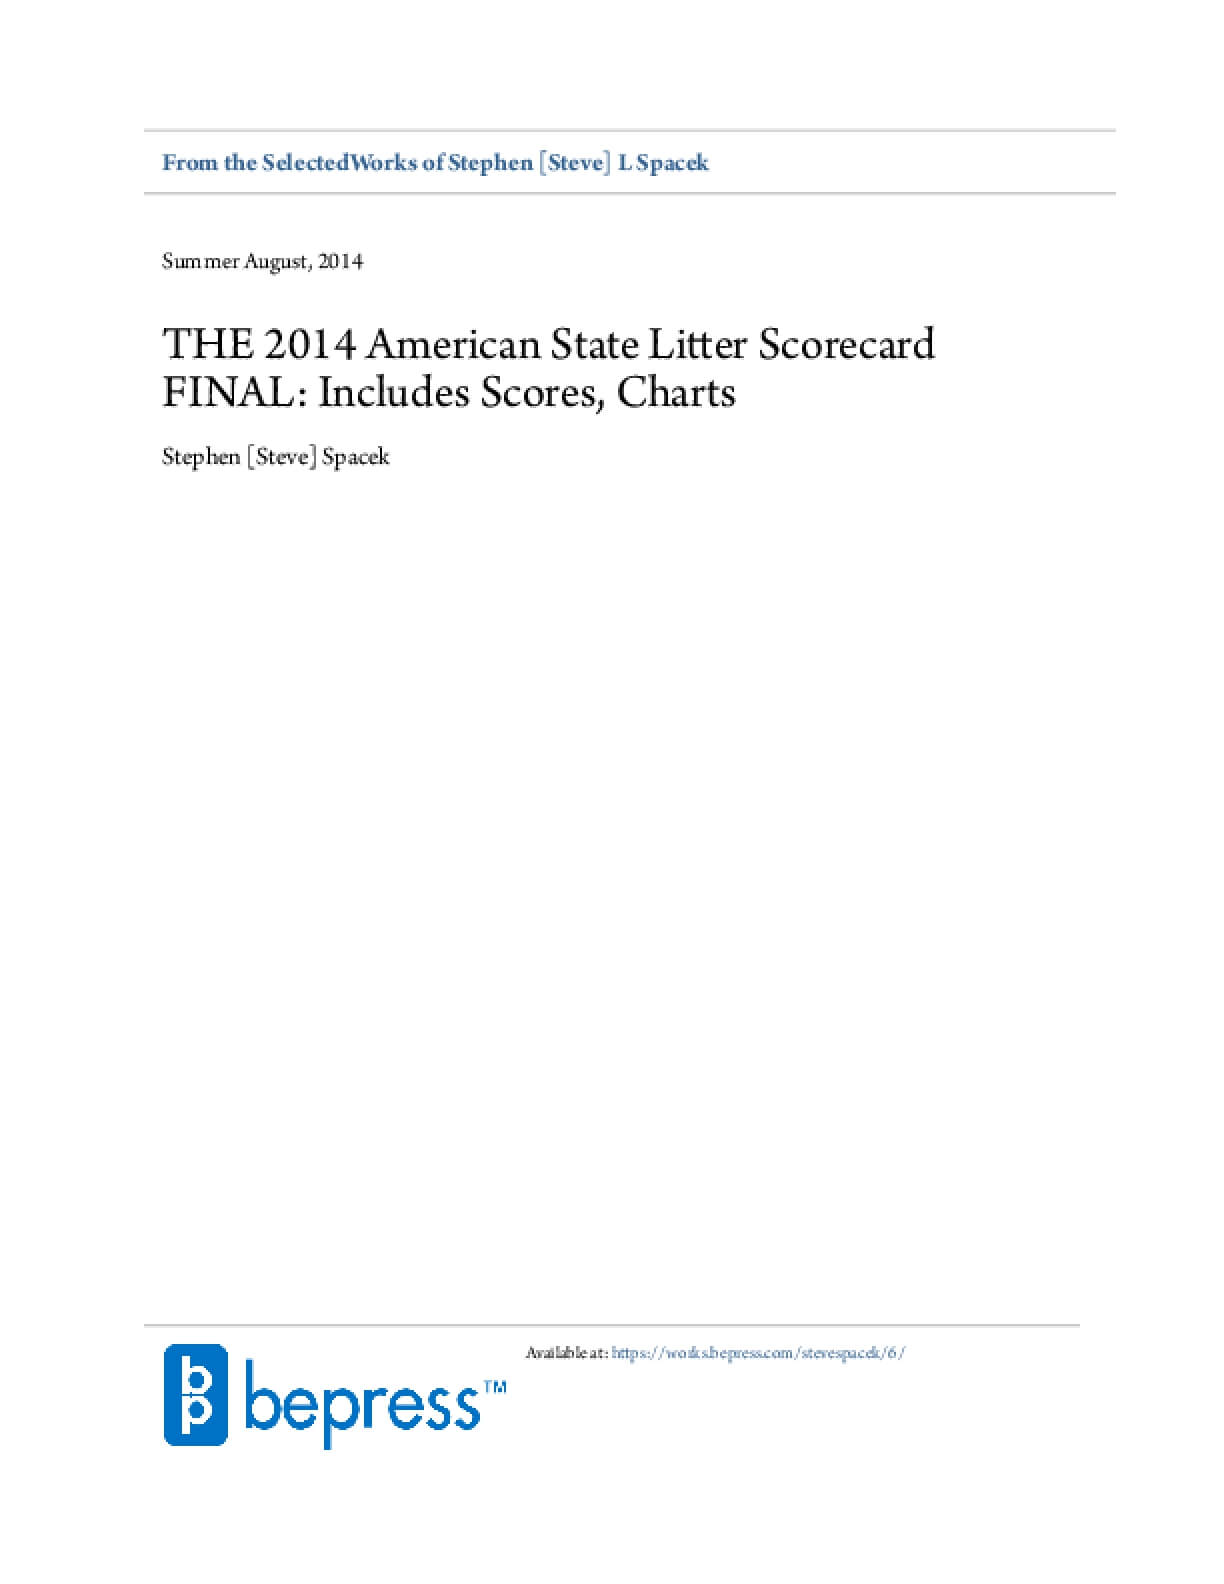 The 2014 American State Litter Scorecard FINAL: USA's Dirtiest & Cleanest States Includes Statistics and Charts